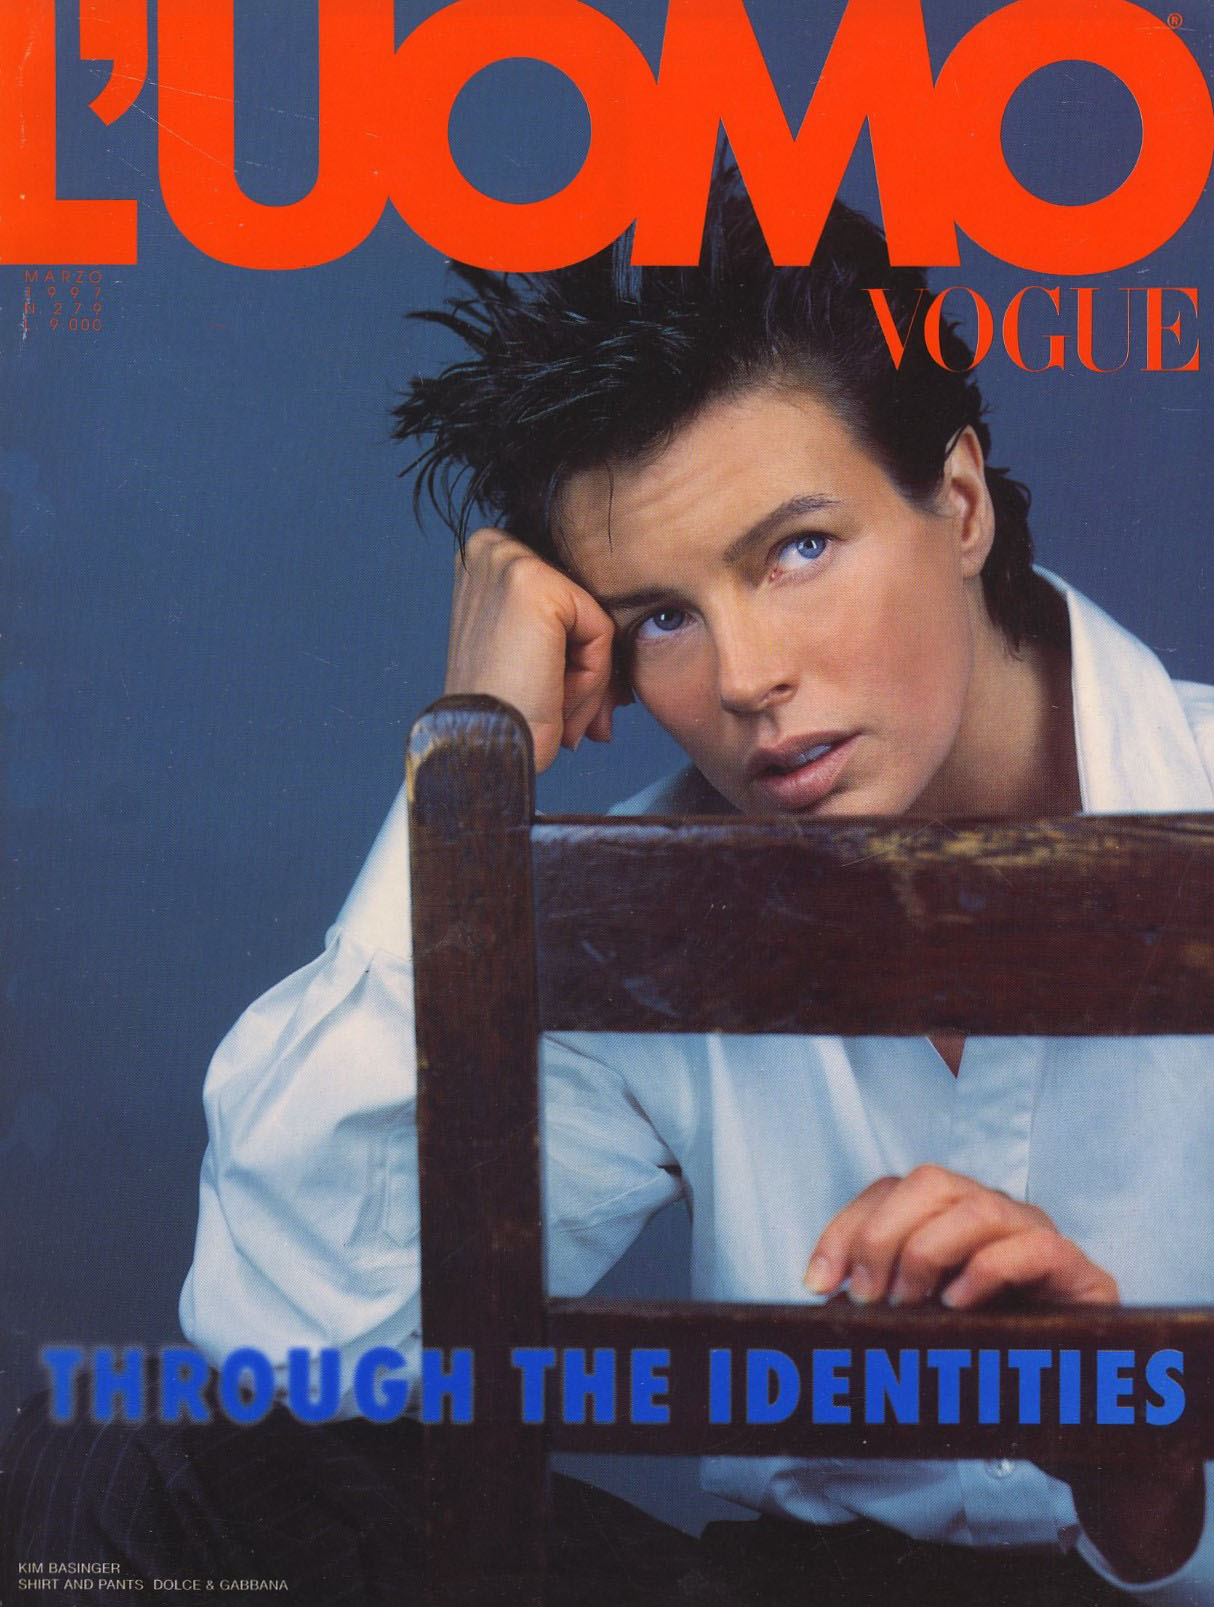 KIM BASINGER | PHOTOGRAPHY MICHEL COMTE | FASHION EDITOR BRANA WOLF | L'UOMO VOGUE N. 279 | MARCH 1997